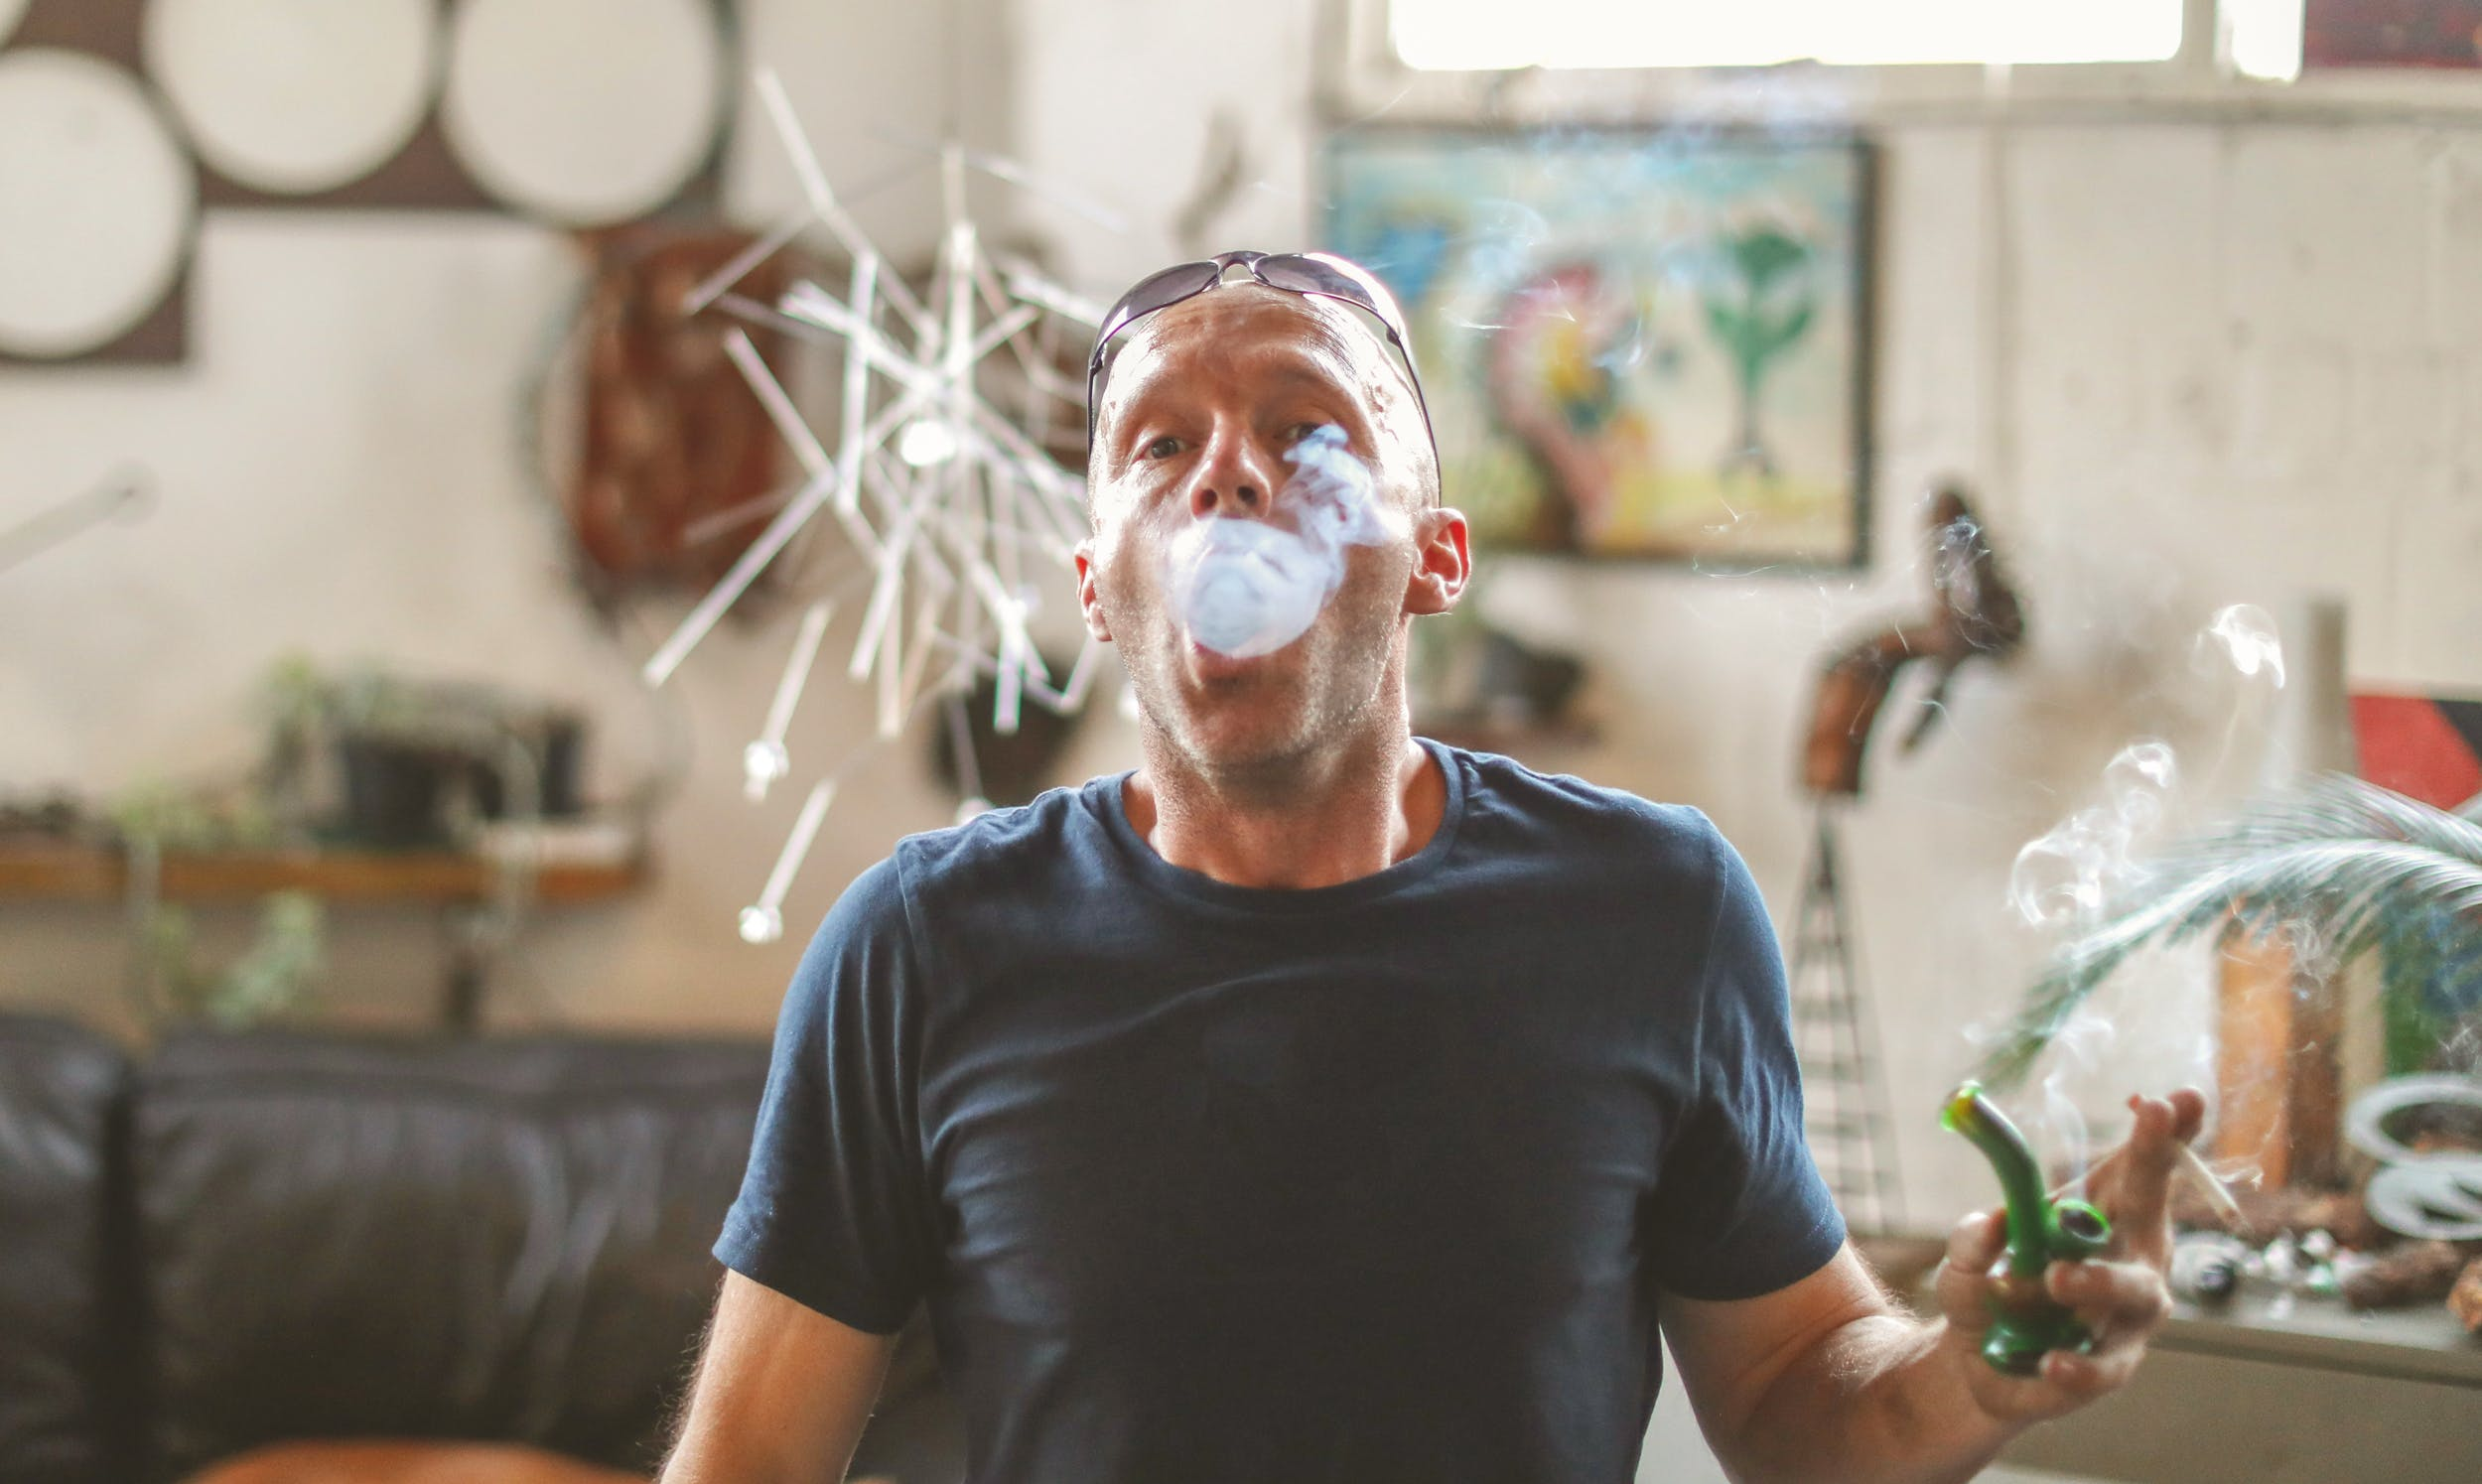 How to Make Dabs: A man exhales a massive cloud of smoke